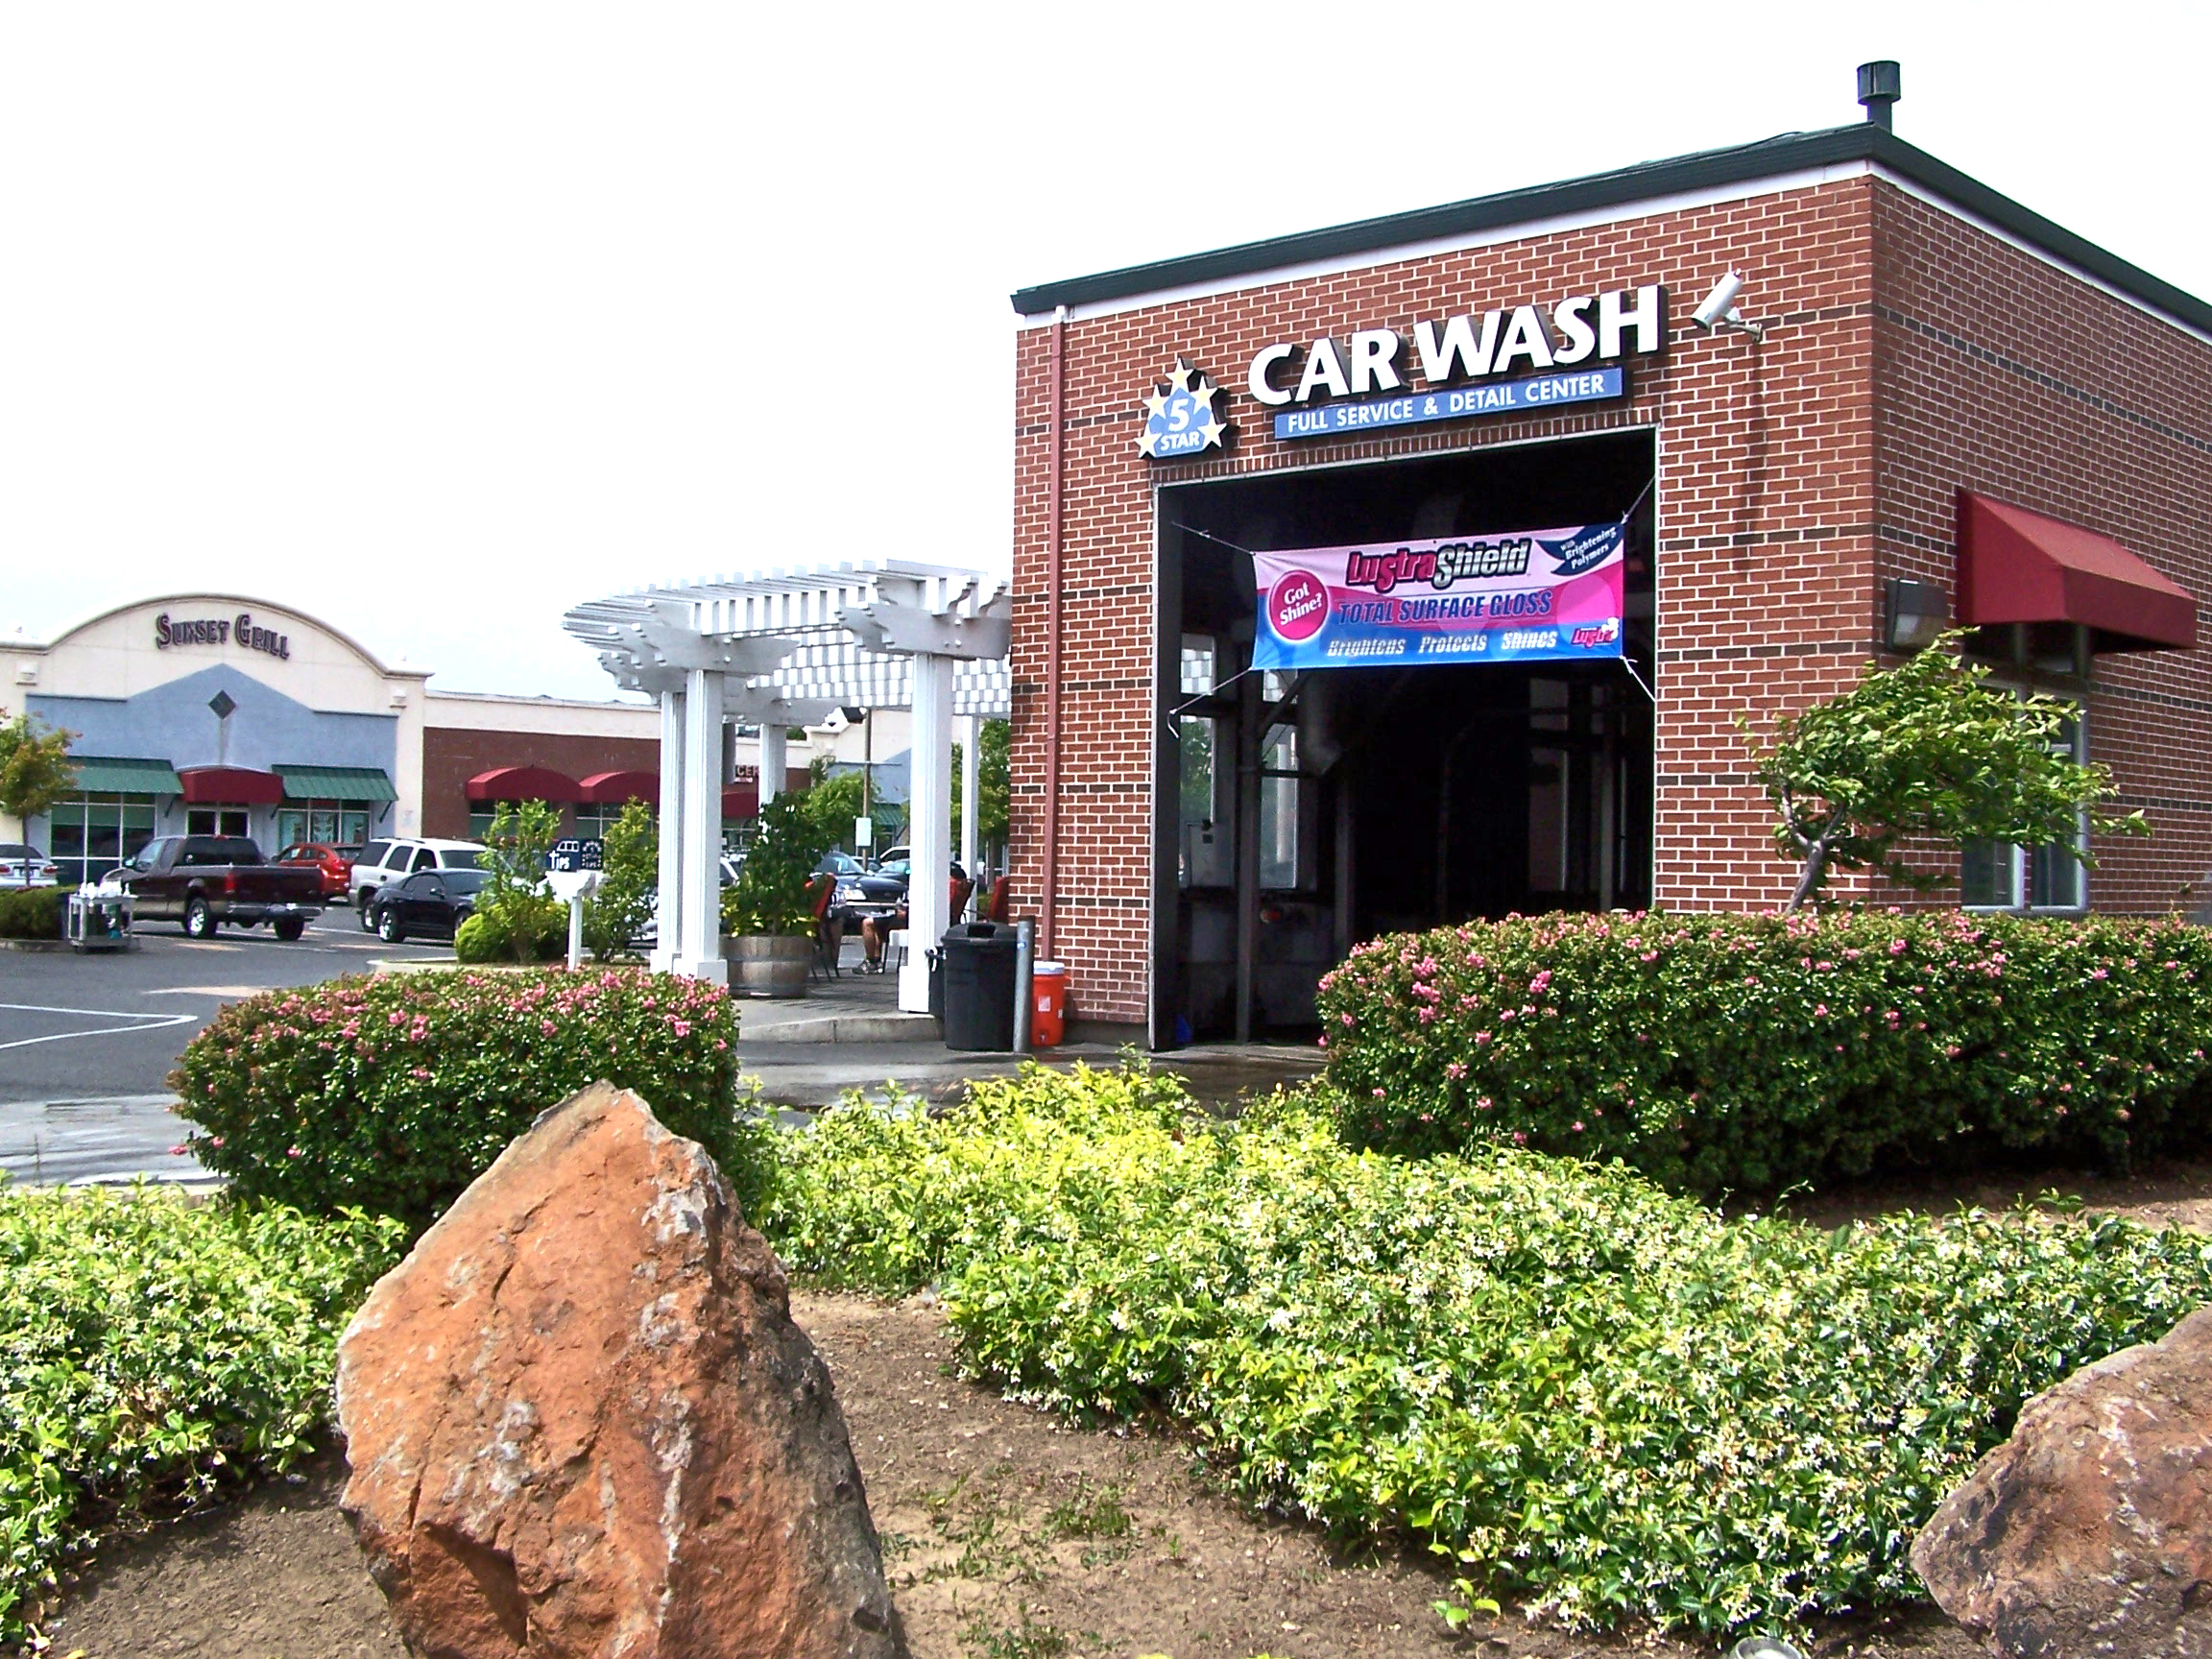 5 star car wash detail centers 900 e travis blvd fairfield ca 5 star car wash detail centers 900 e travis blvd fairfield ca 94533 yp solutioingenieria Choice Image